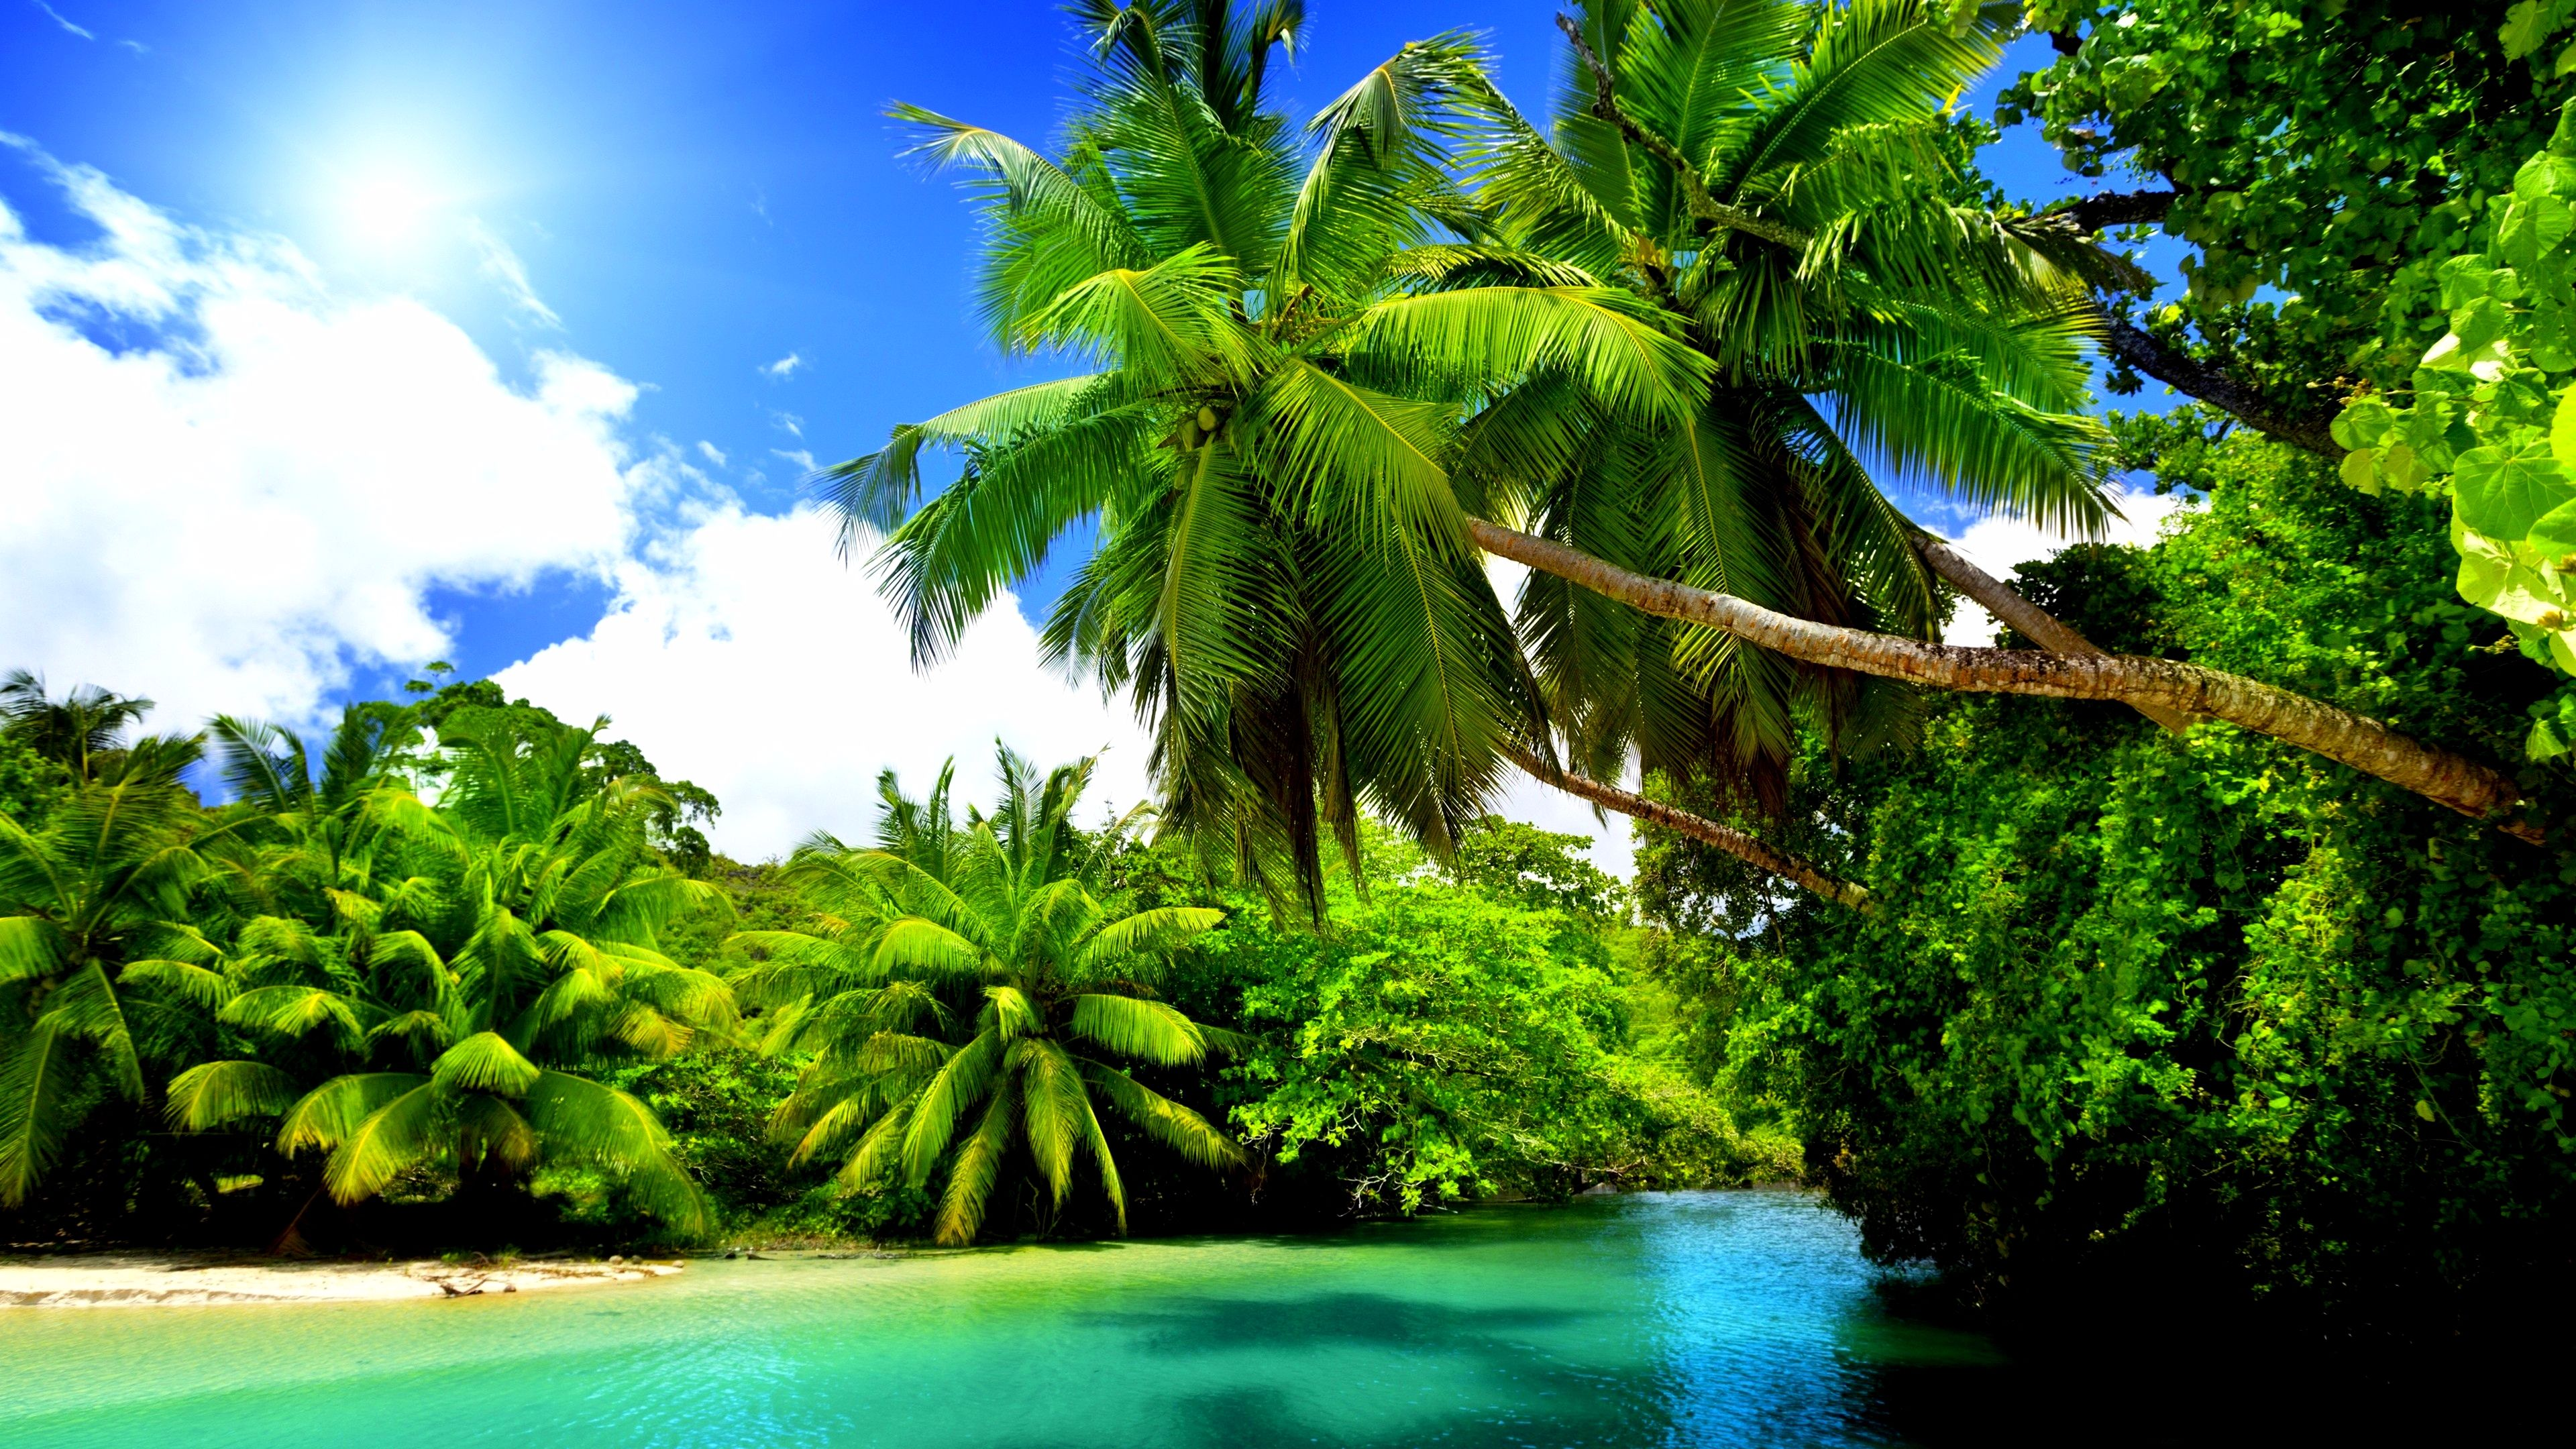 Hd Tropical Island Beach Paradise Wallpapers And Backgrounds: Tropical Wallpapers, Photos And Desktop Backgrounds Up To